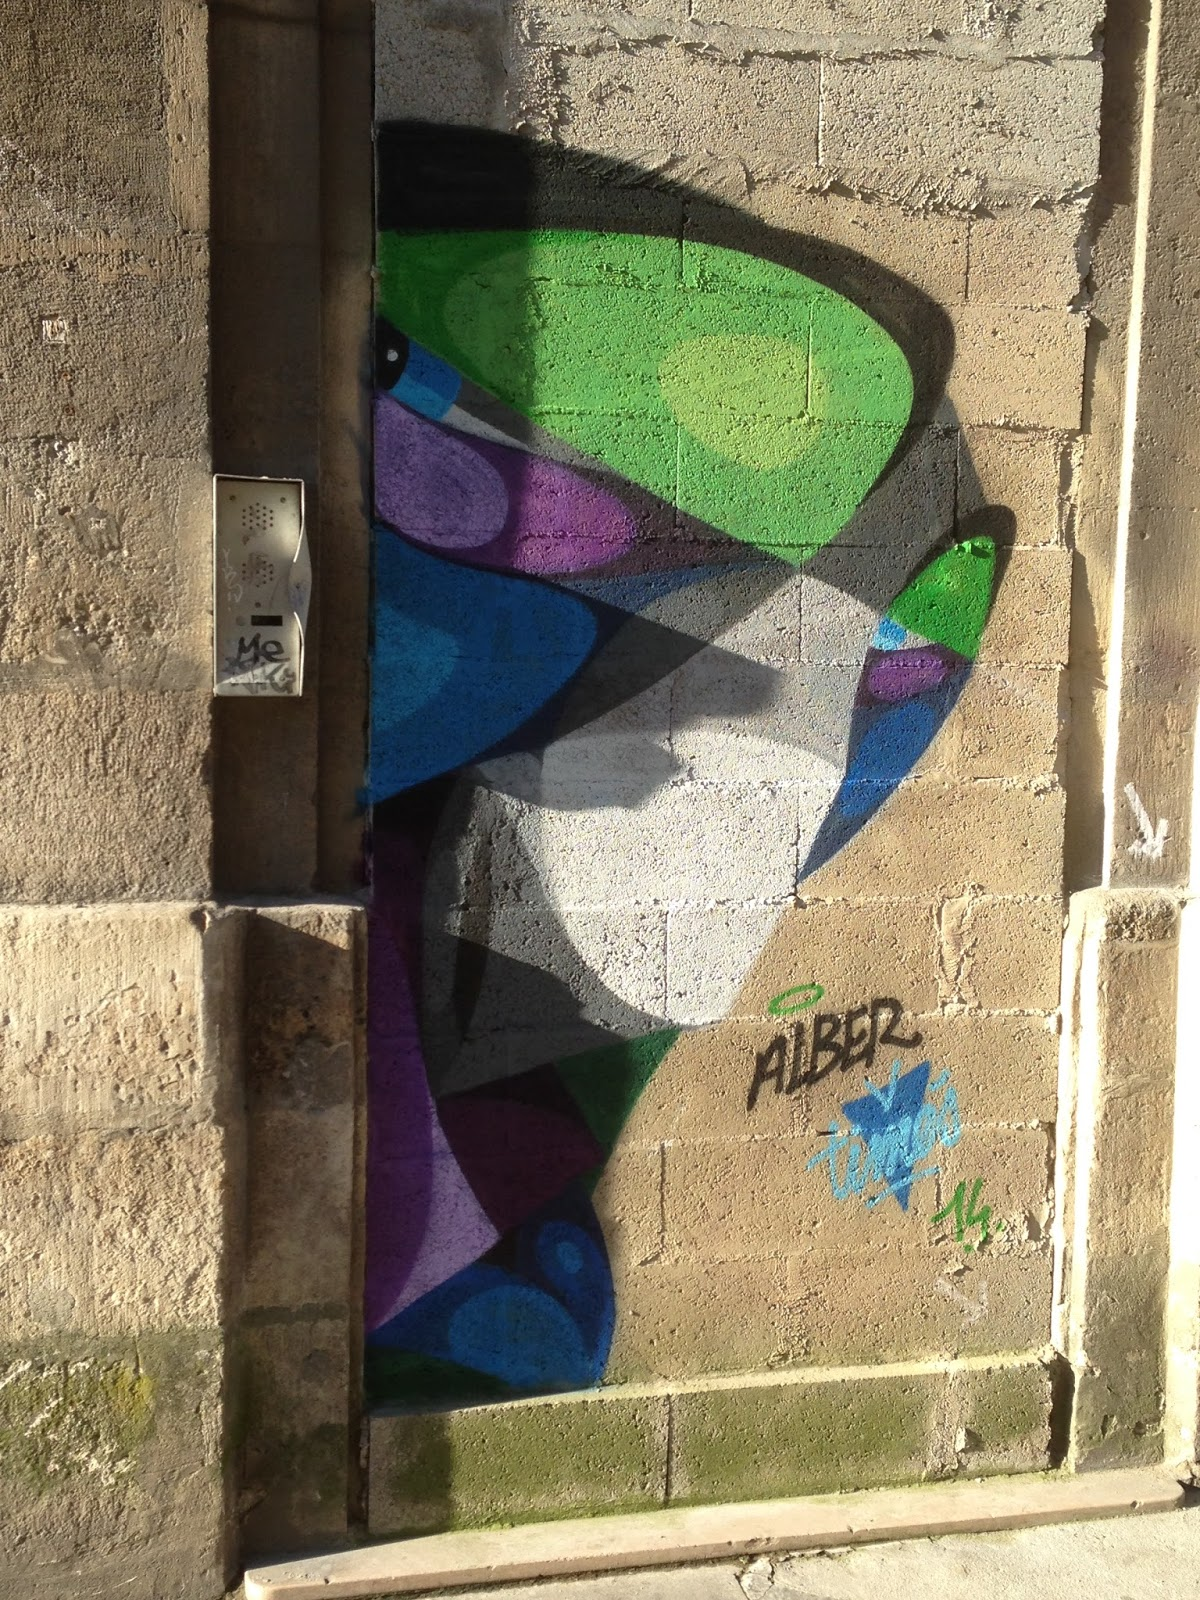 Bordeaux Street Art Alber